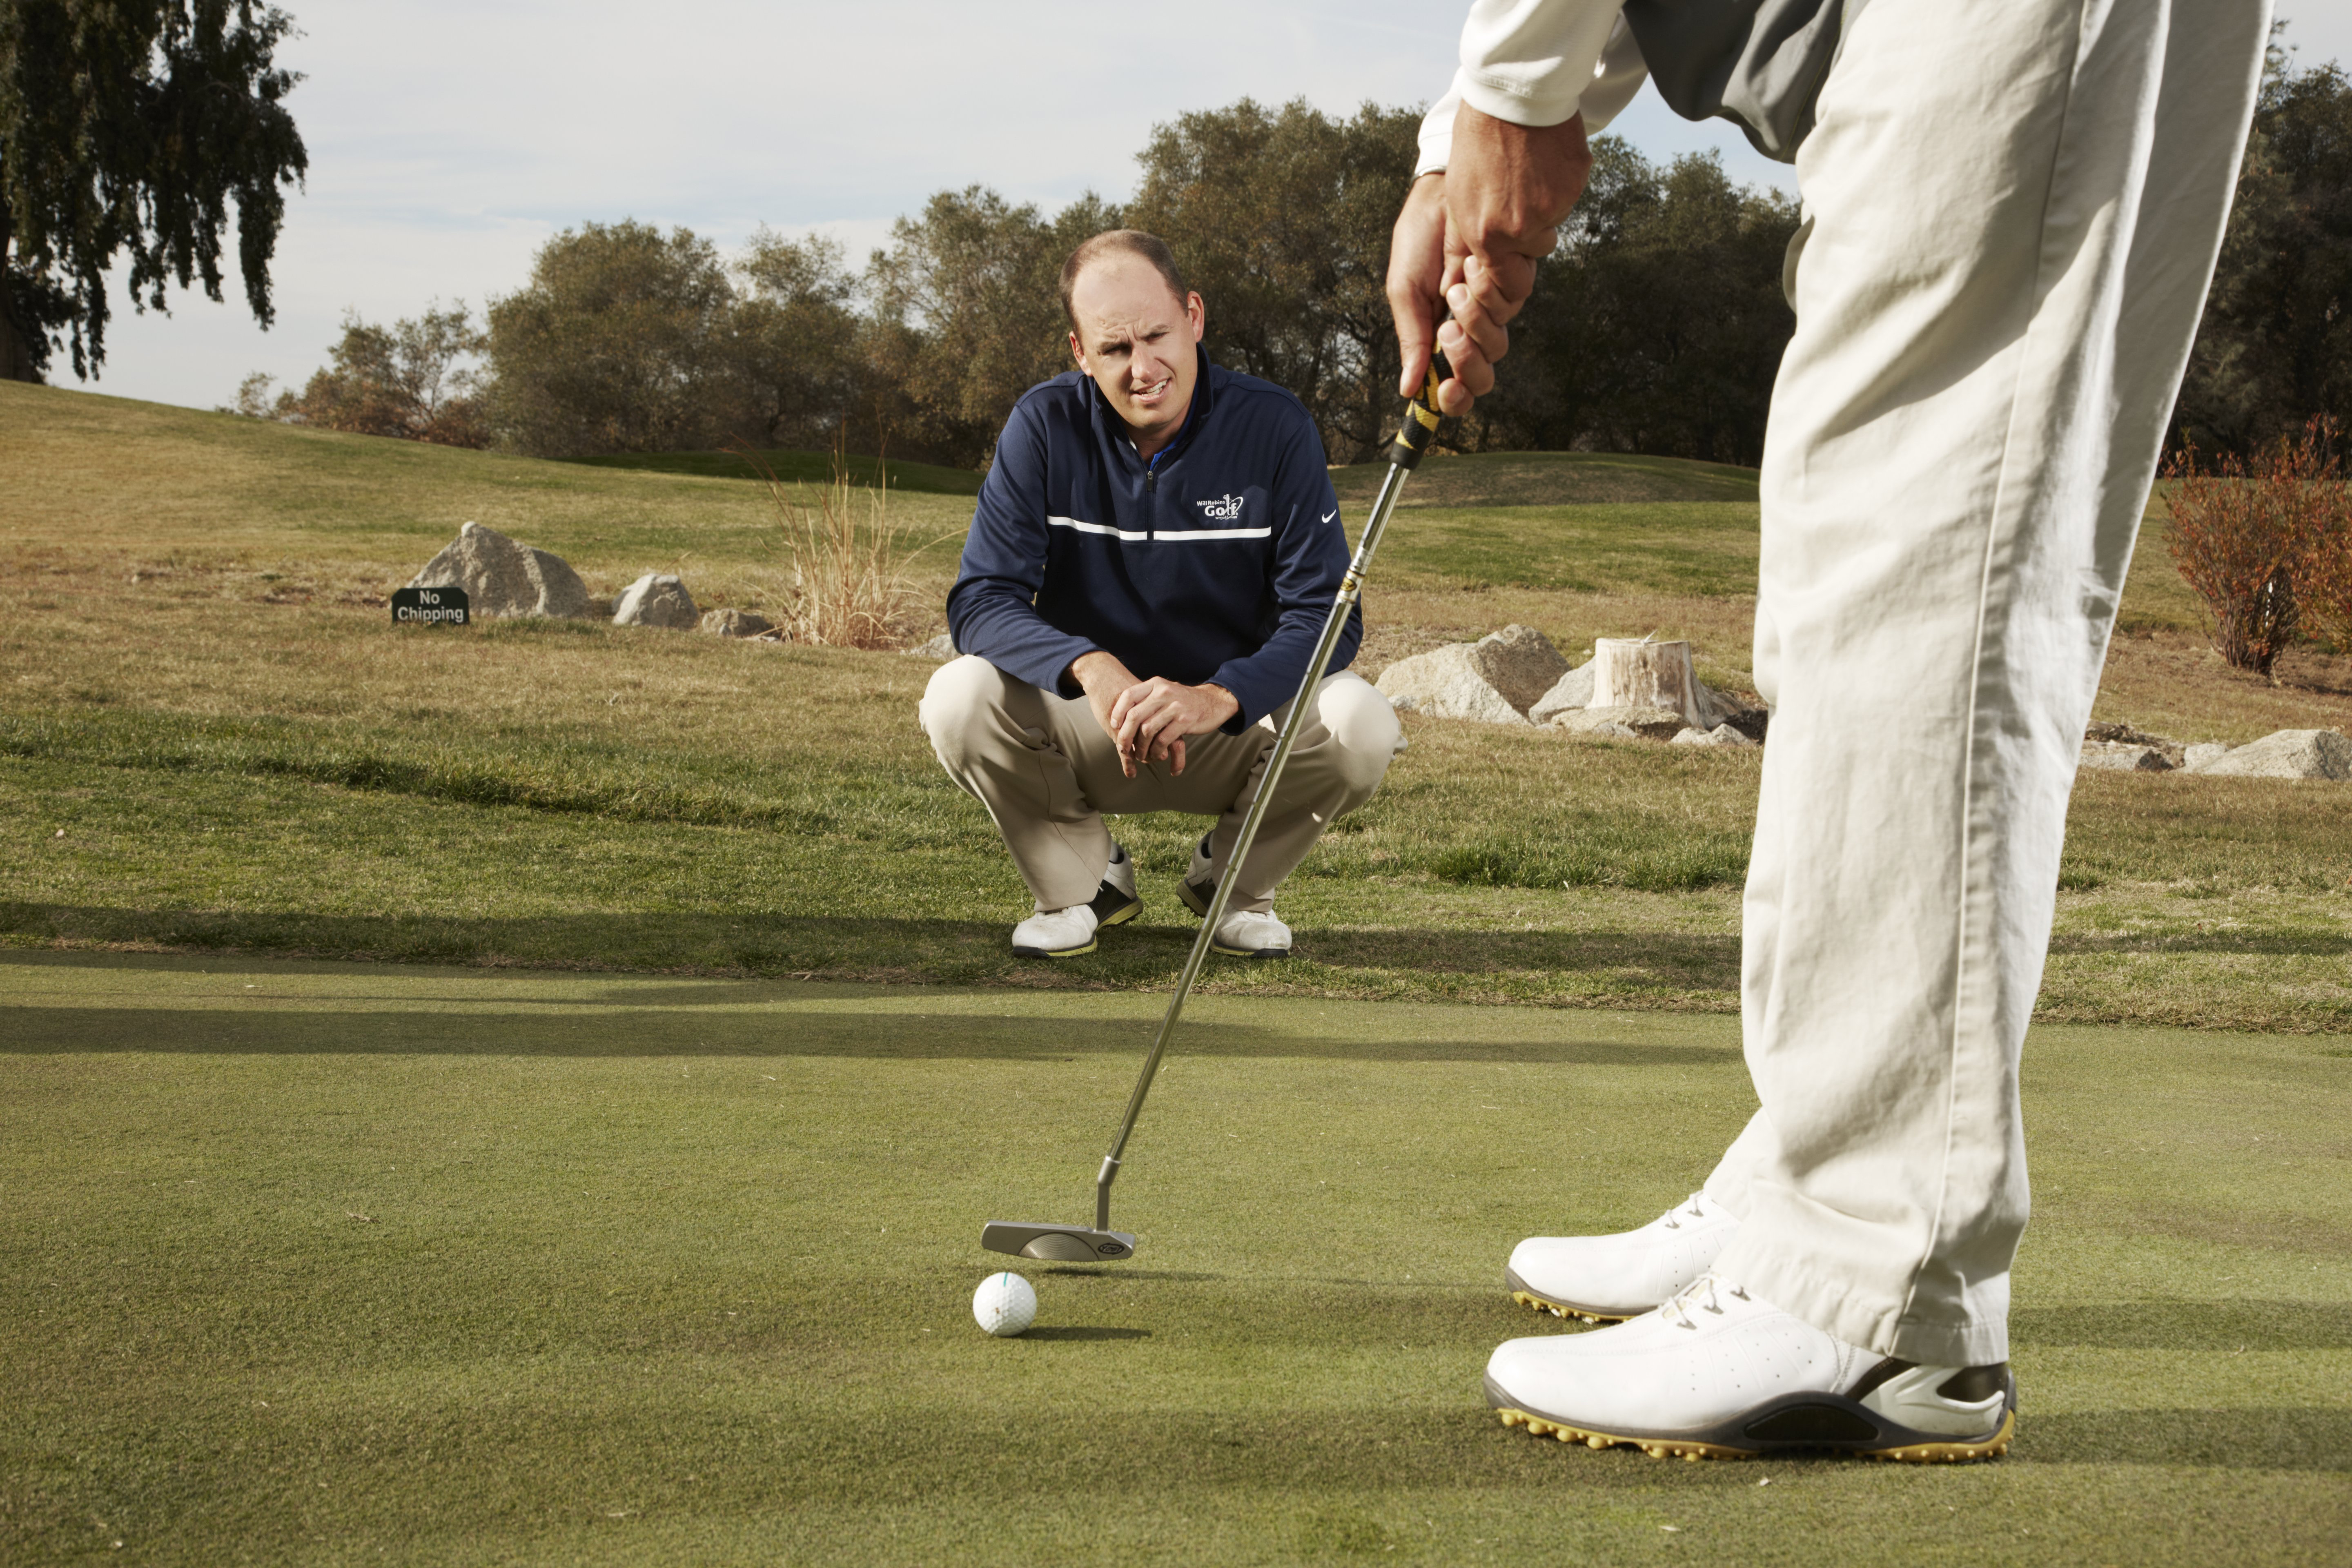 Robins believes traditional teaching dogma is too technical. He helps his students hone their natural swing shape and save strokes on and around the greens.